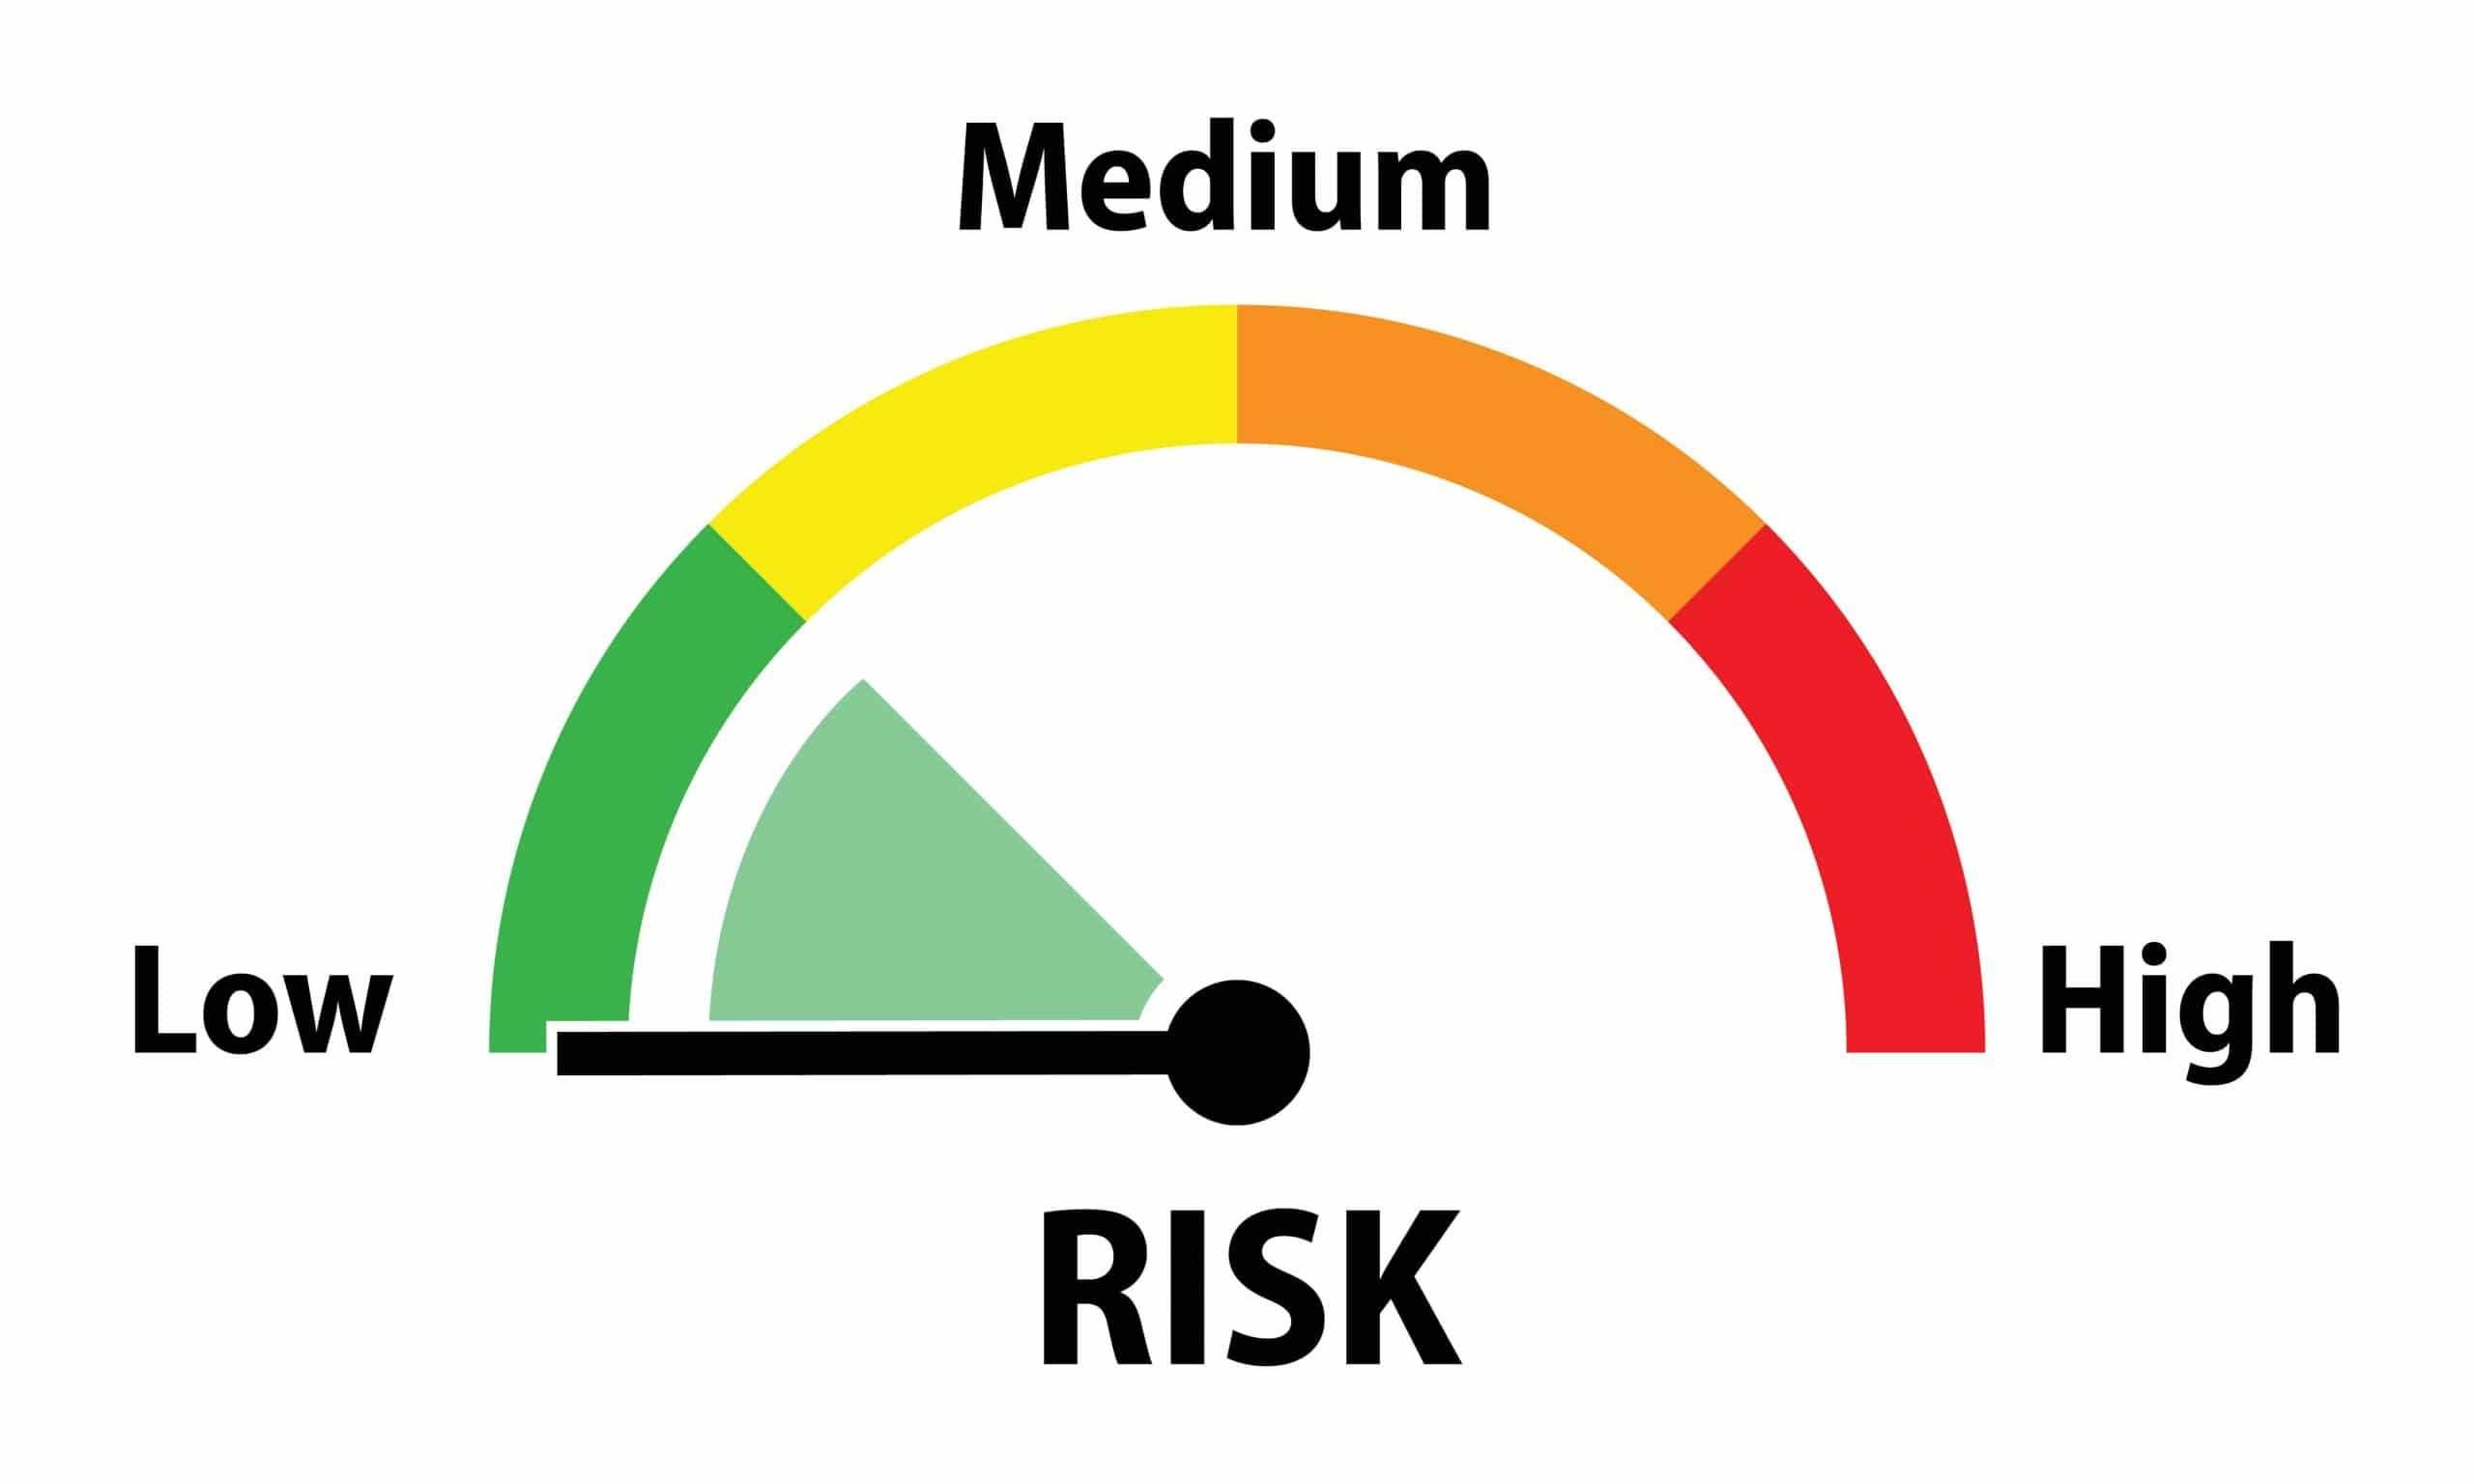 optimizdba_assessment_low_risk